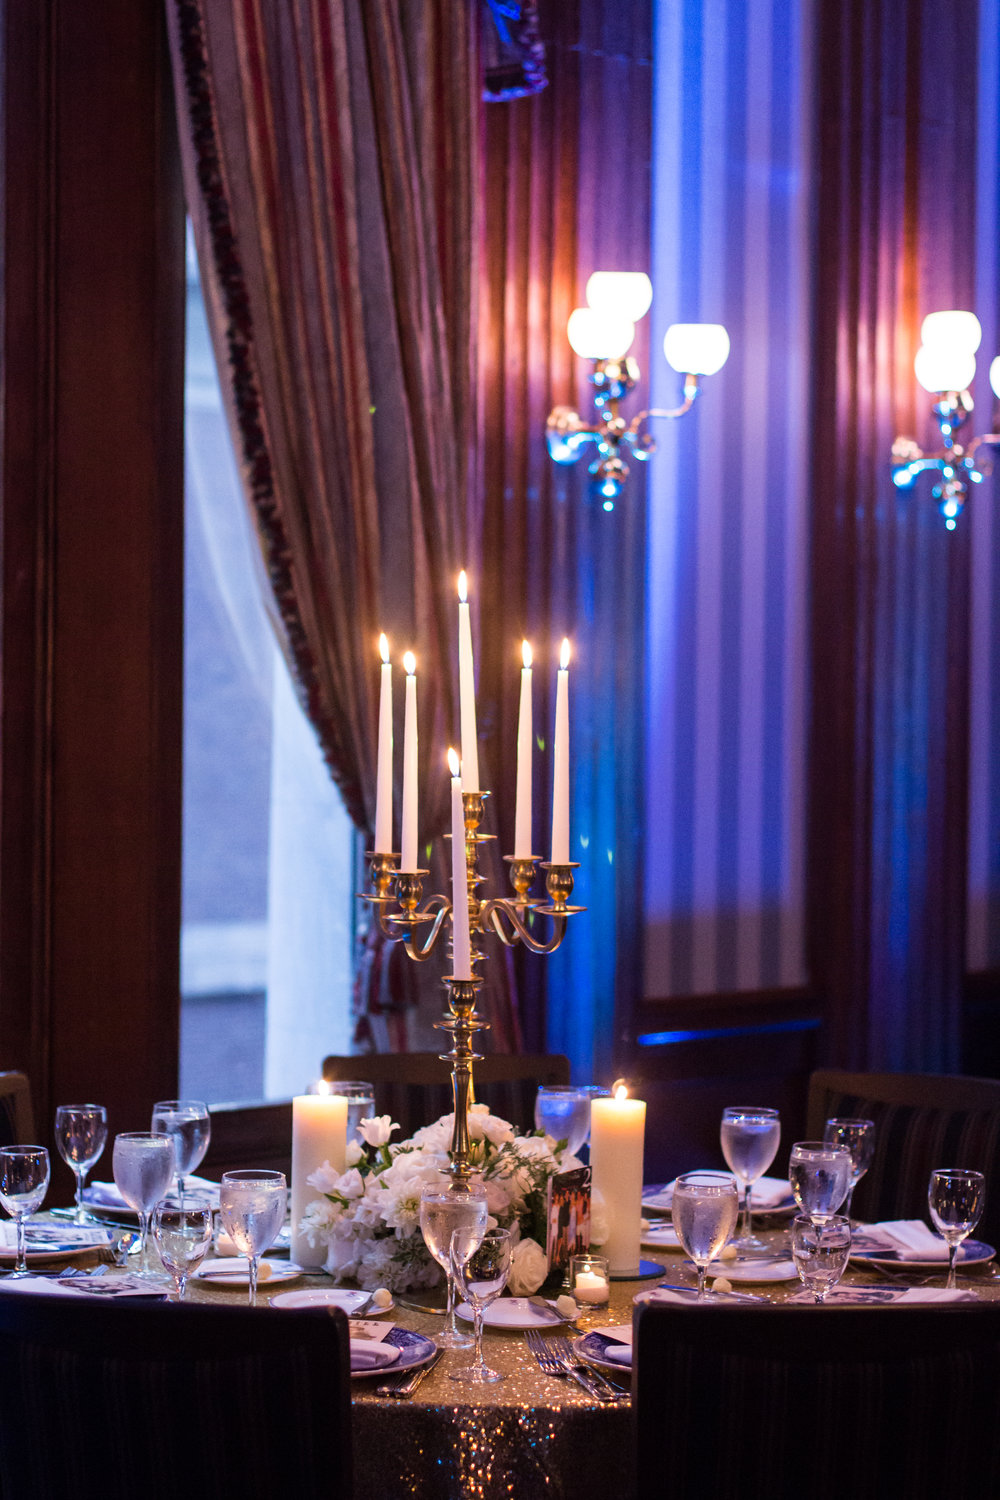 Ornate candelabrum and white floral arrangements to illuminate the room